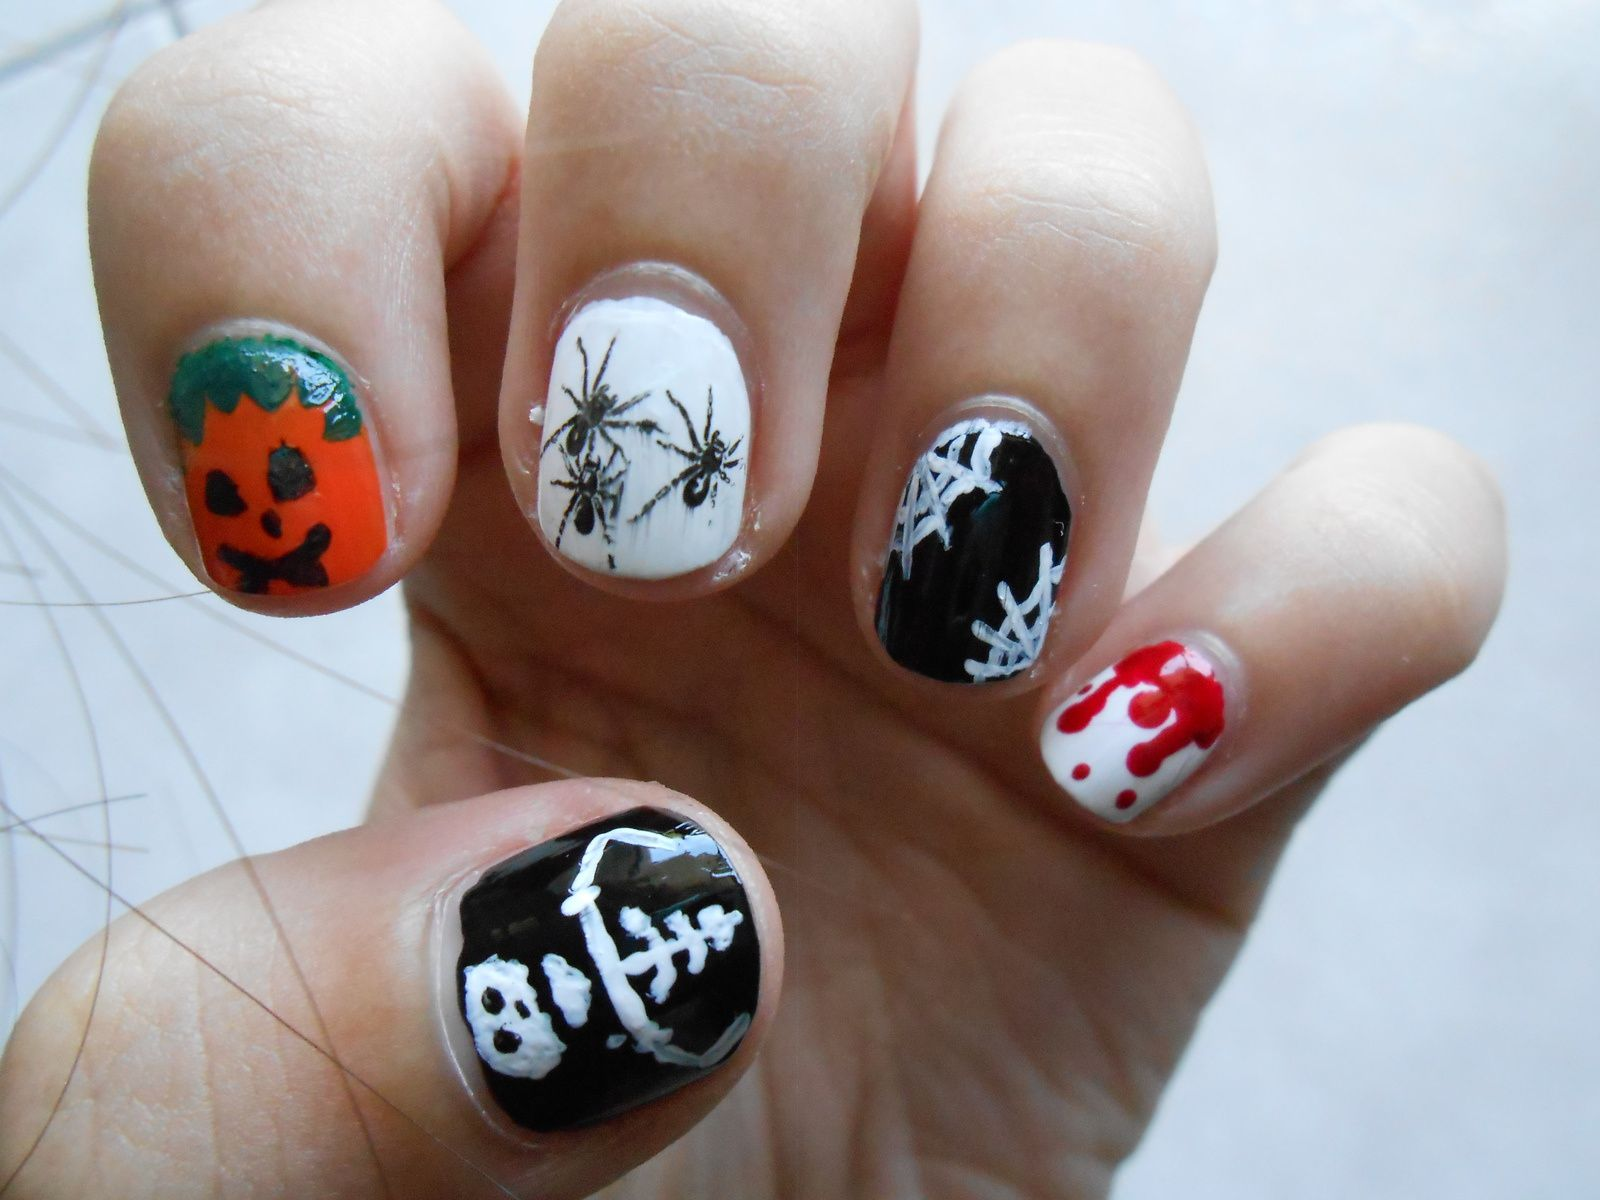 nail art d 39 halloween sur ongles courts les ongles de. Black Bedroom Furniture Sets. Home Design Ideas